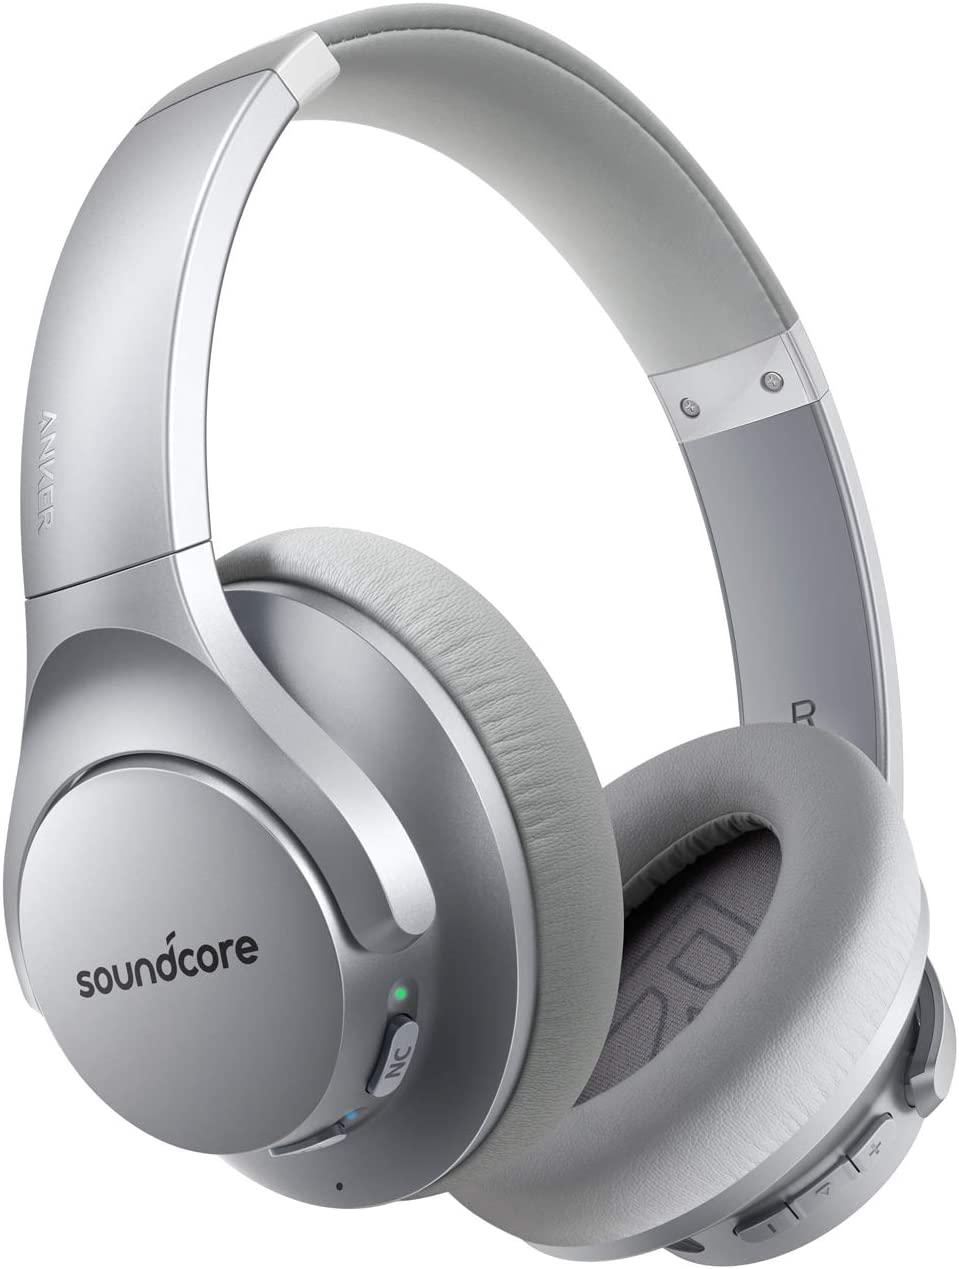 Anker Soundcore Life Q20 Hybrid Active Noise Cancelling Headphones, Wireless Over Ear Bluetooth Headphones with 40H Playtime, Hi-Res Audio, Deep Bass, Memory Foam Ear Cups and Headband (Silver)